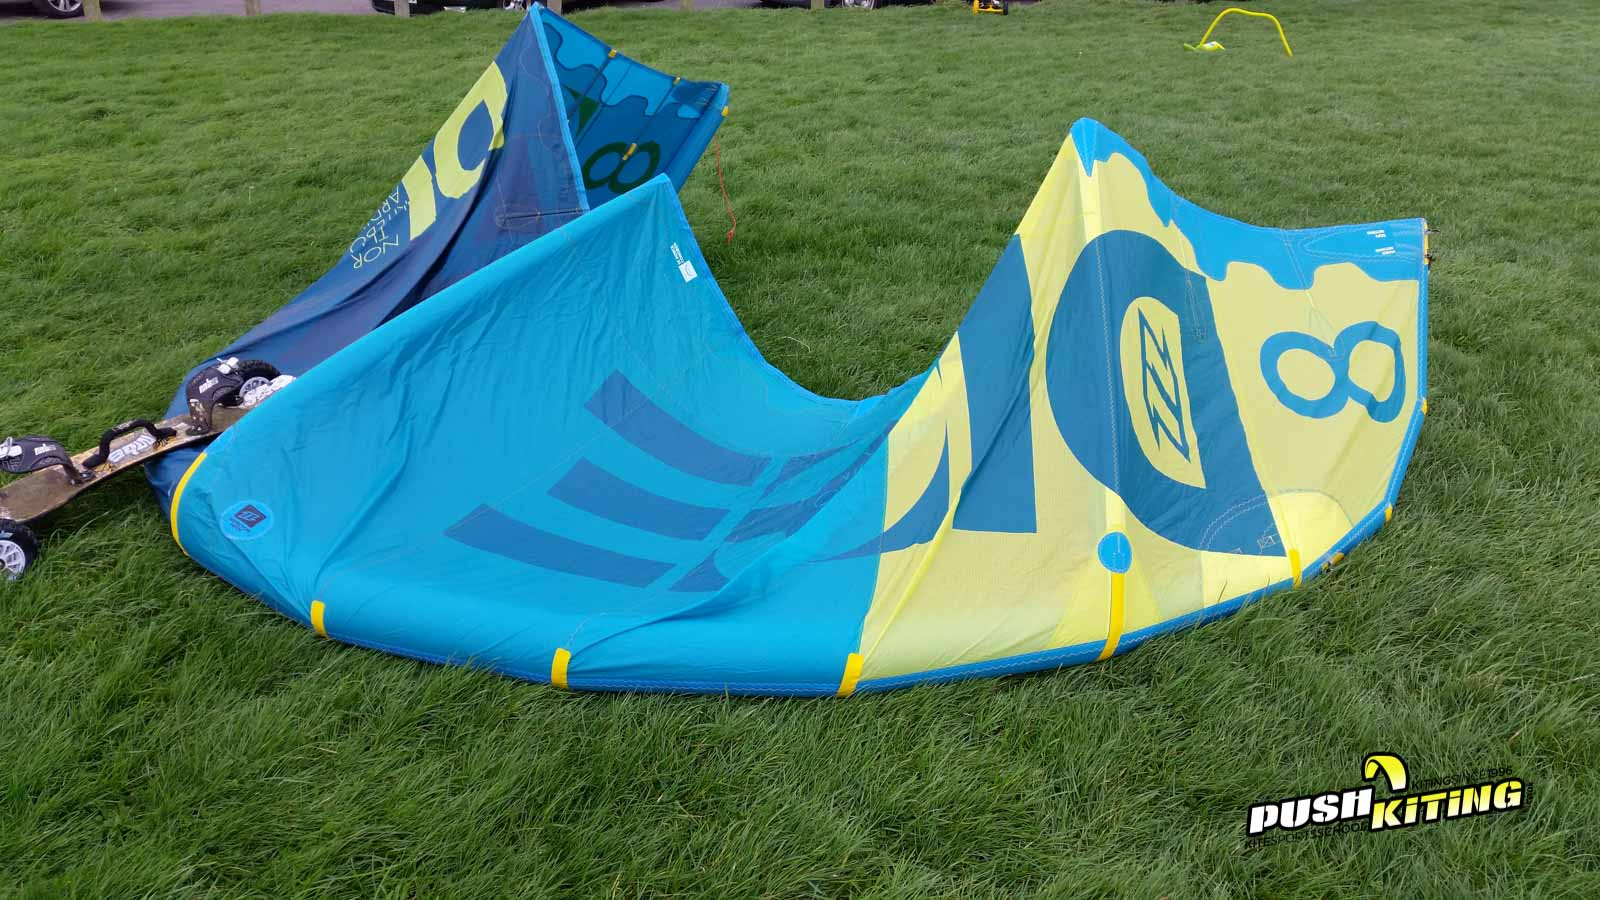 north kitesurfing kites for sale